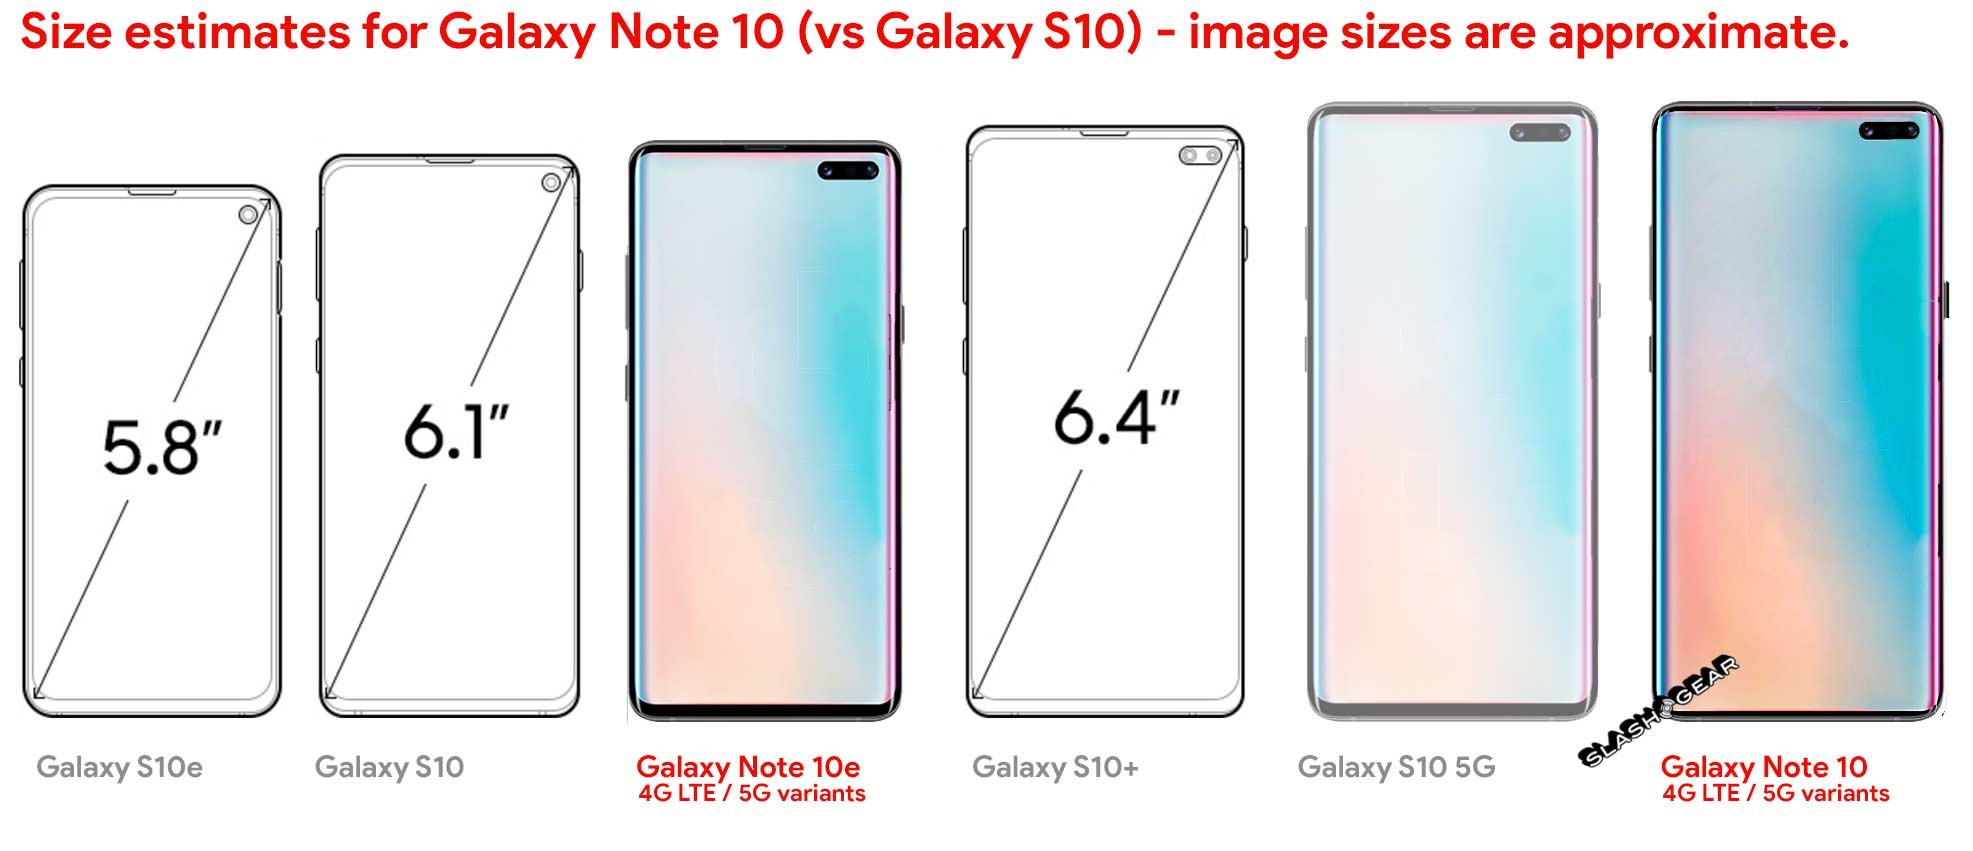 Note 10 size